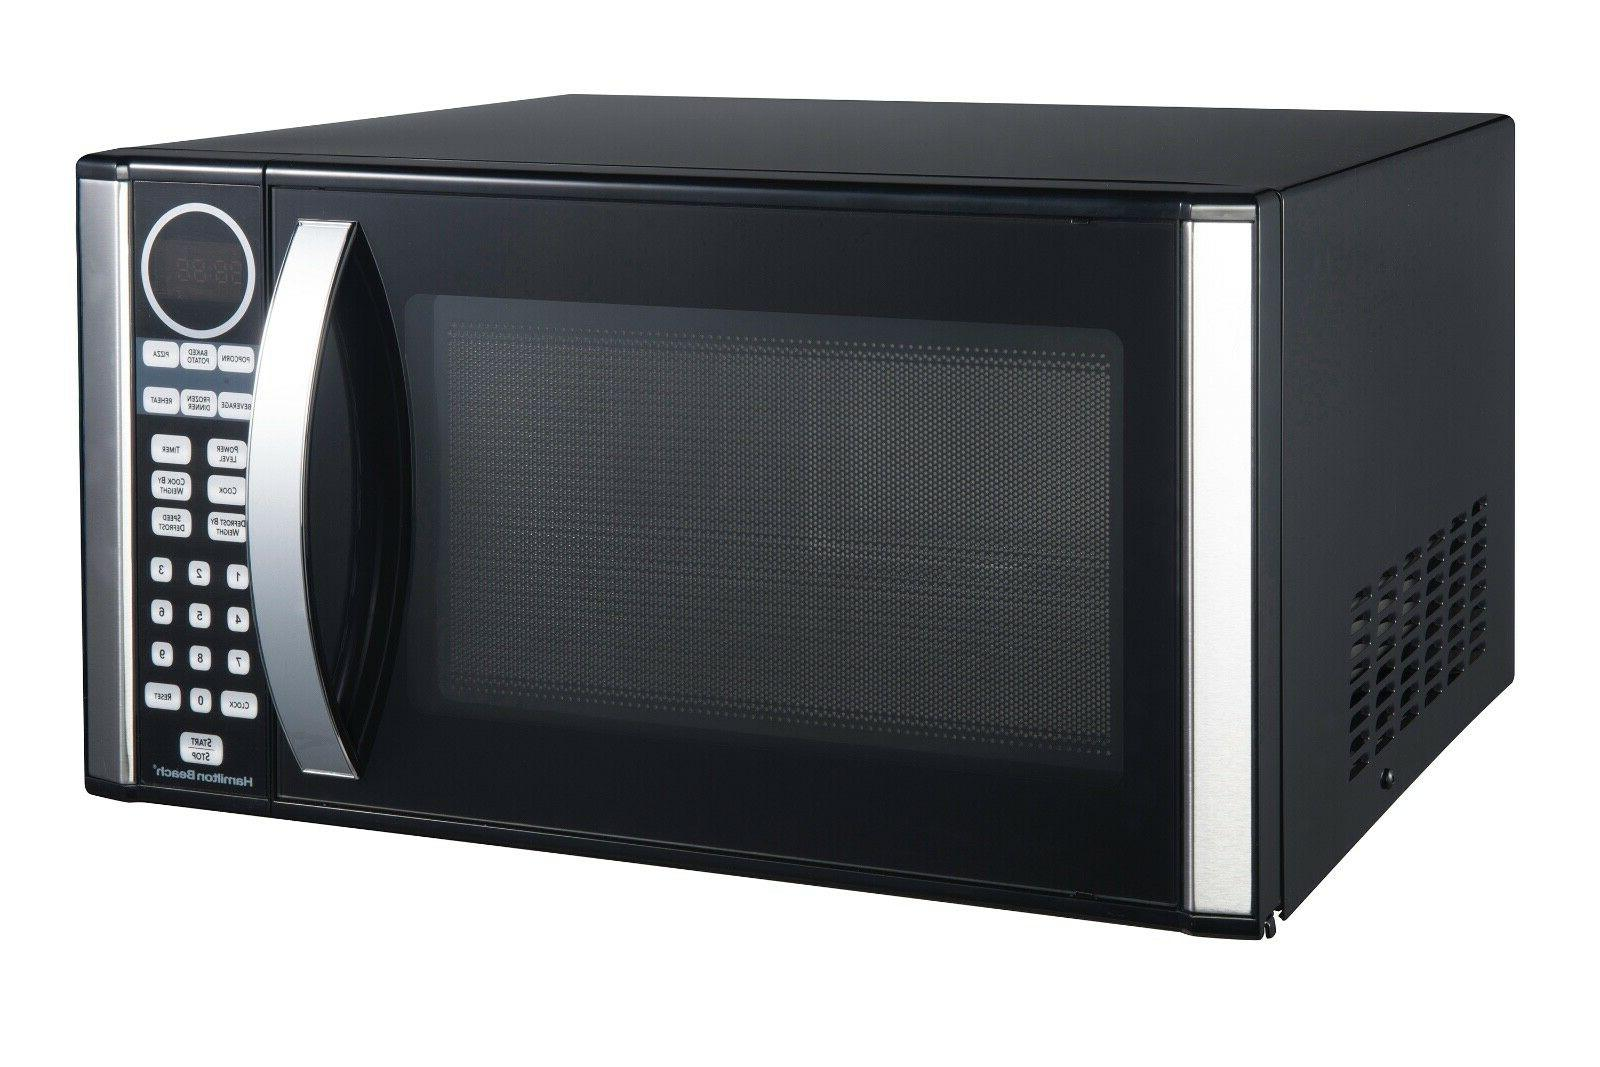 Hamilton Microwave CounterTop Stainless 1.3 shipping